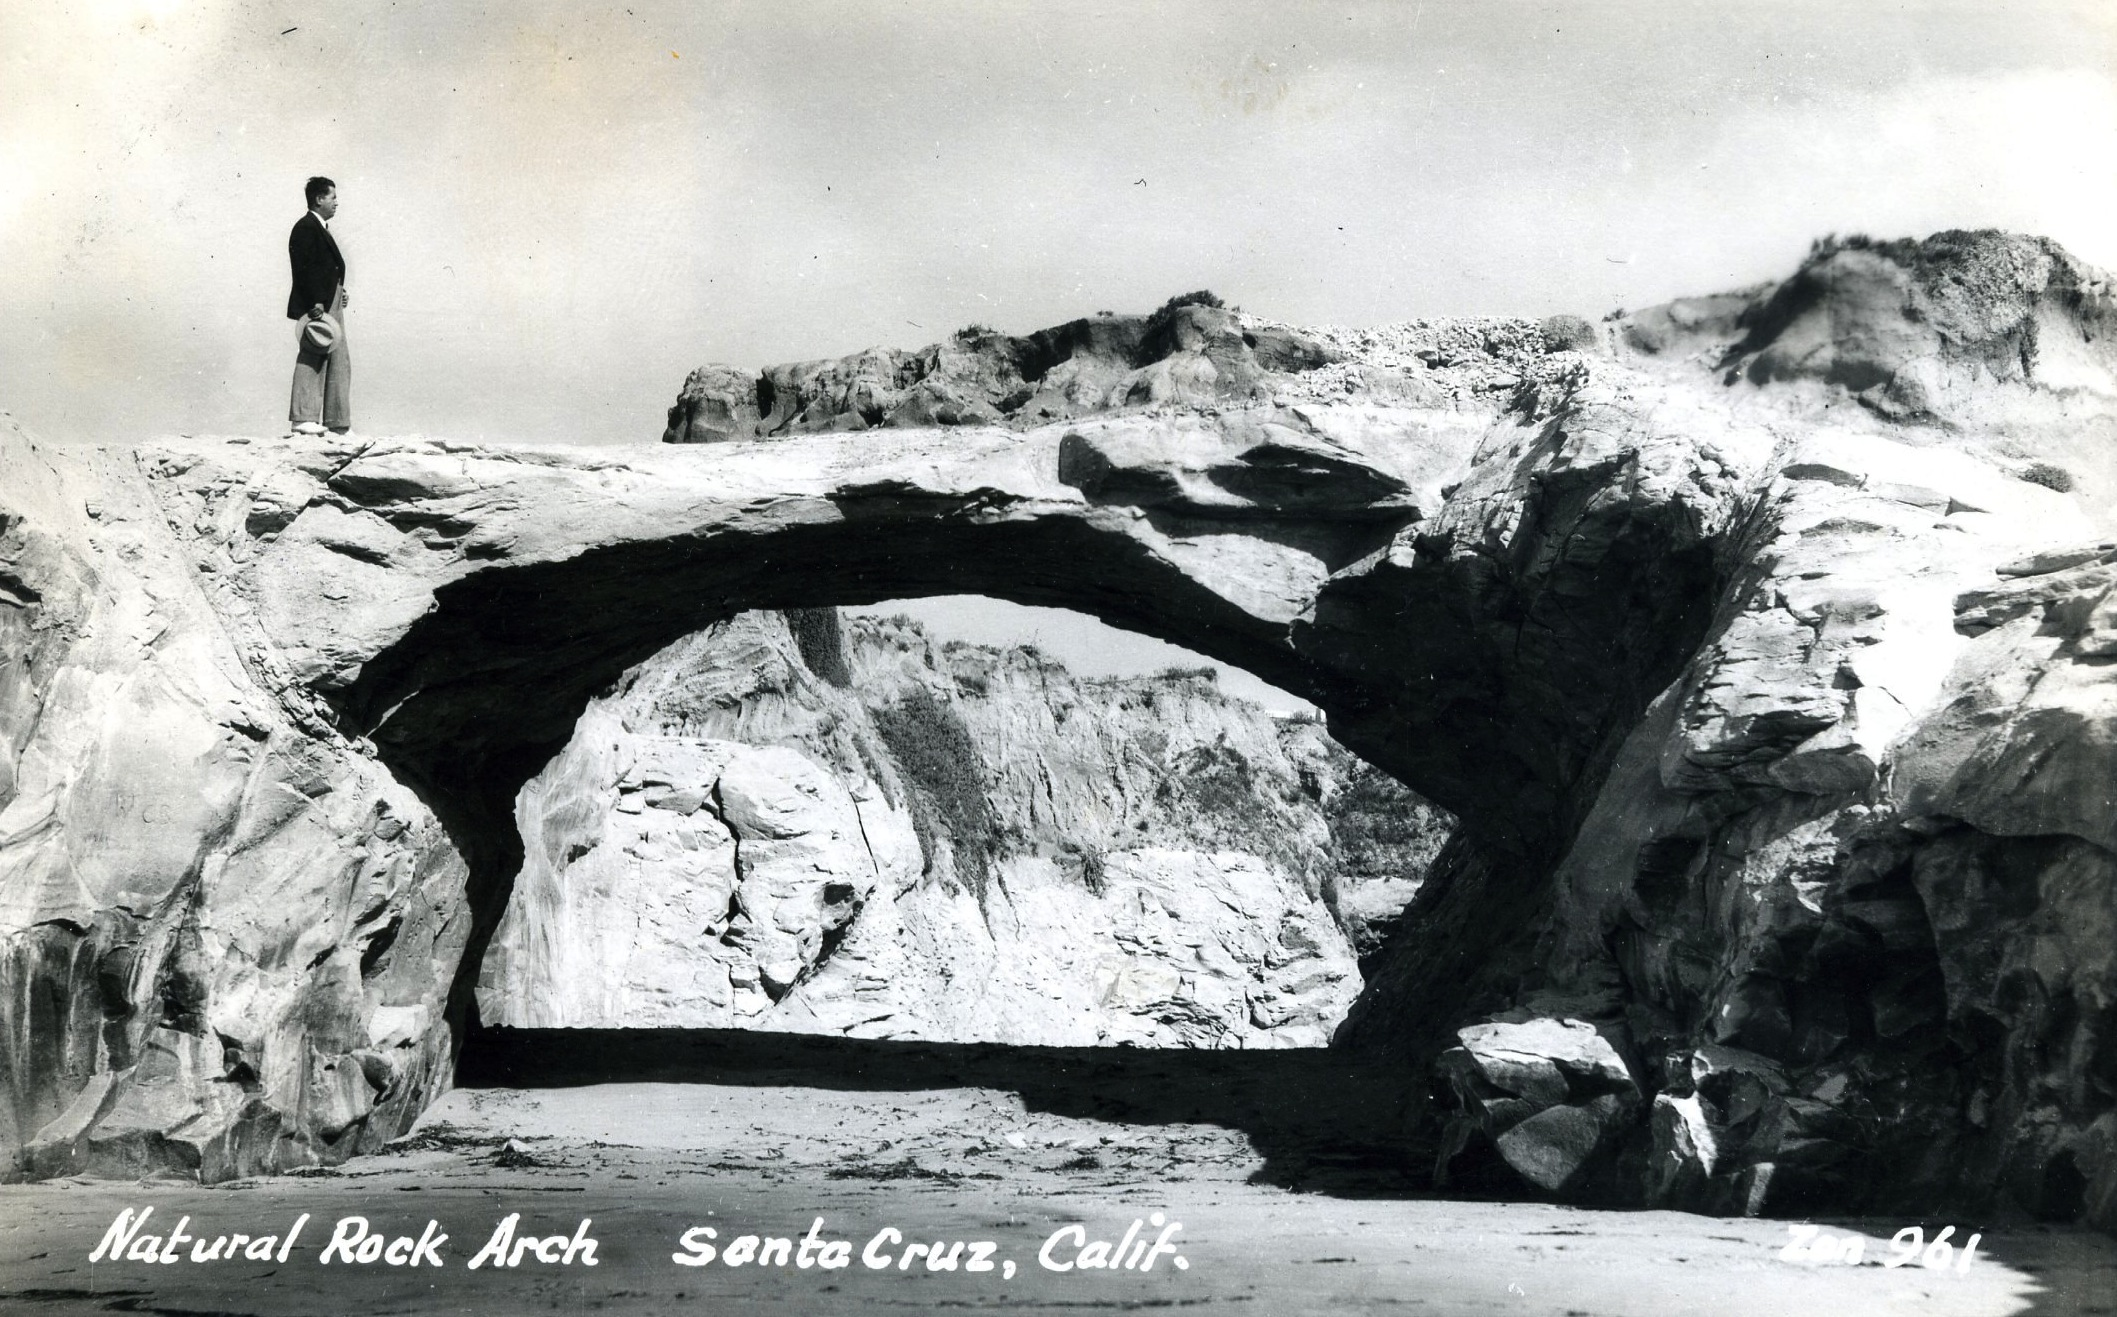 Natural Rock Arch many years in the past